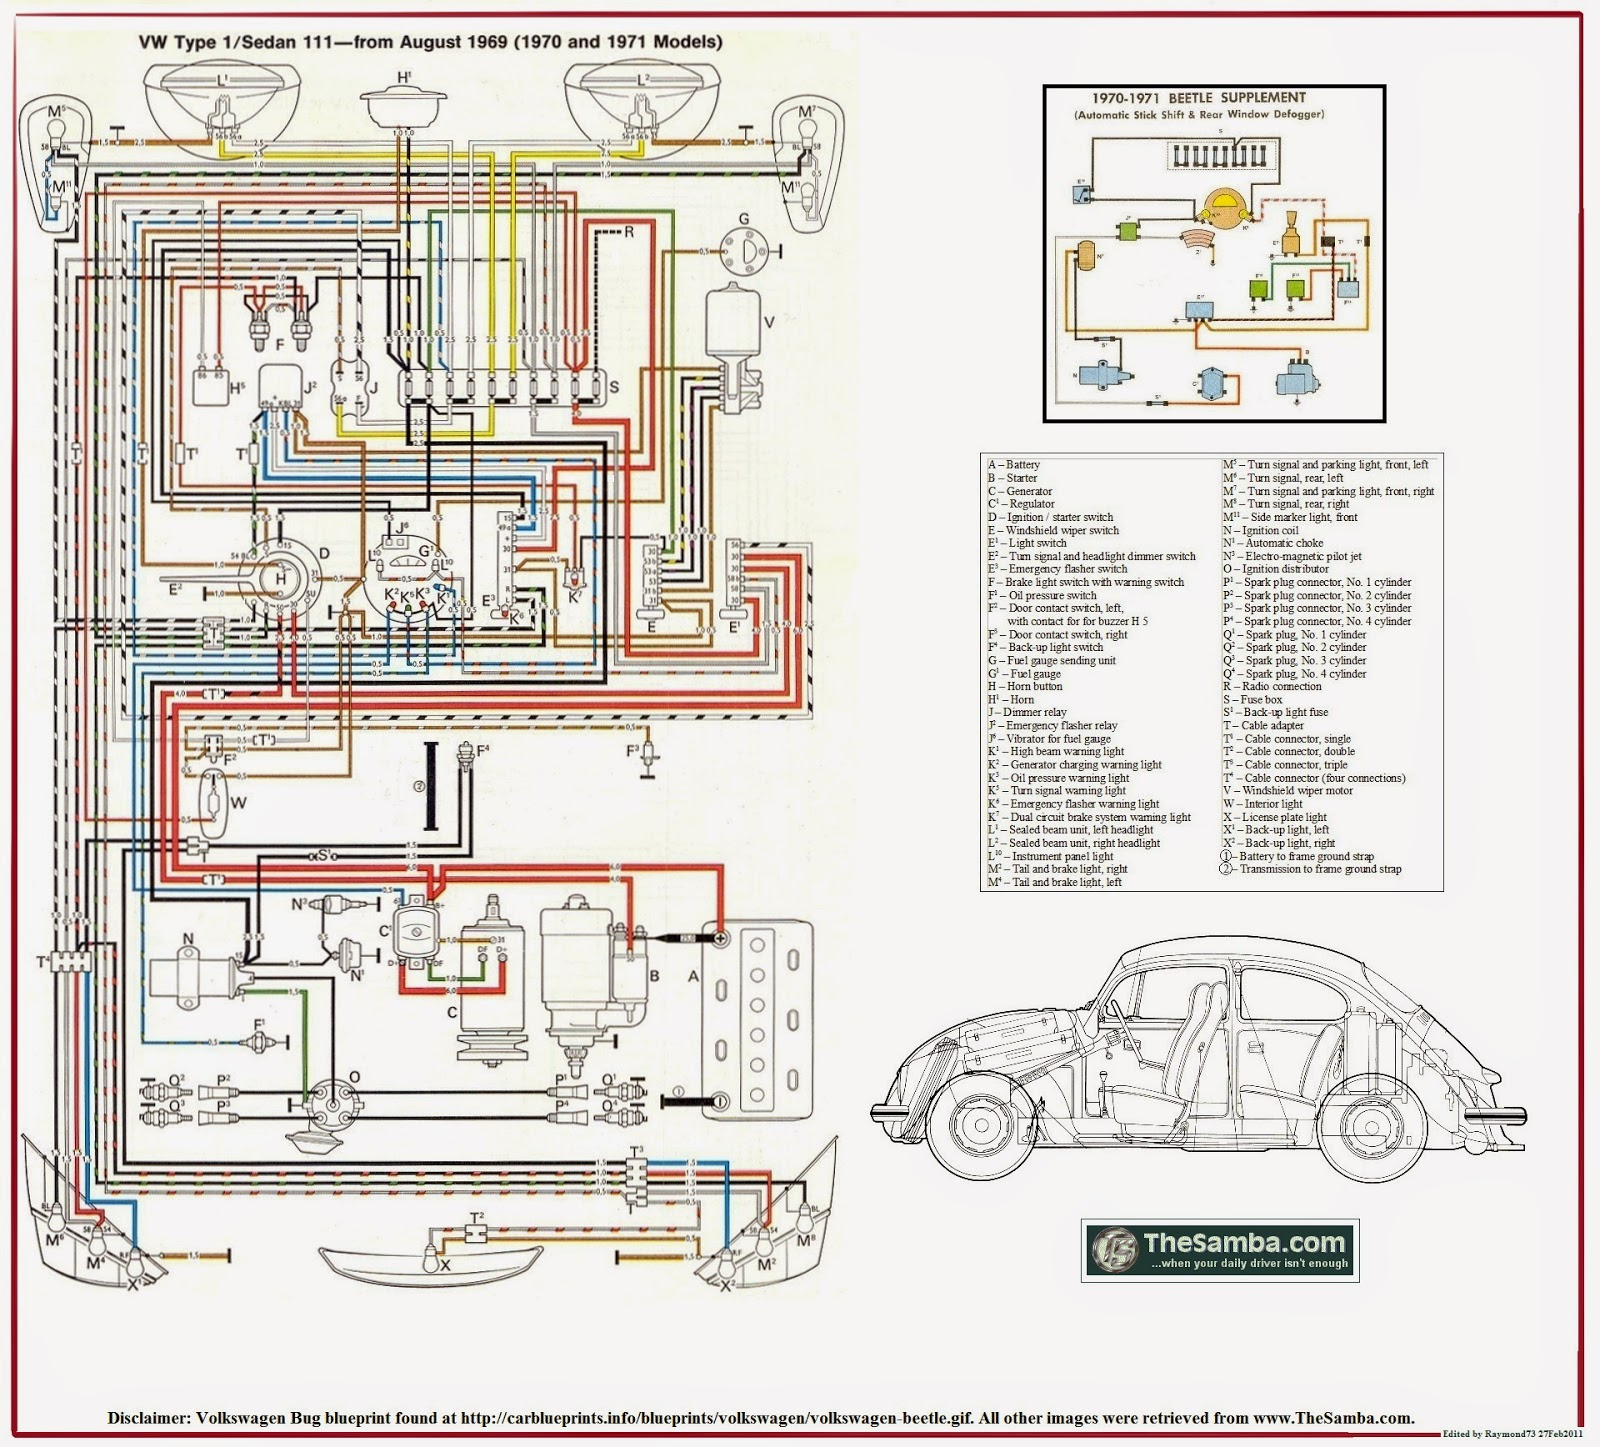 type 1 vw engine diagram wiring diagram load type 1 vw engine wiring wiring diagram expert type 1 vw engine diagram